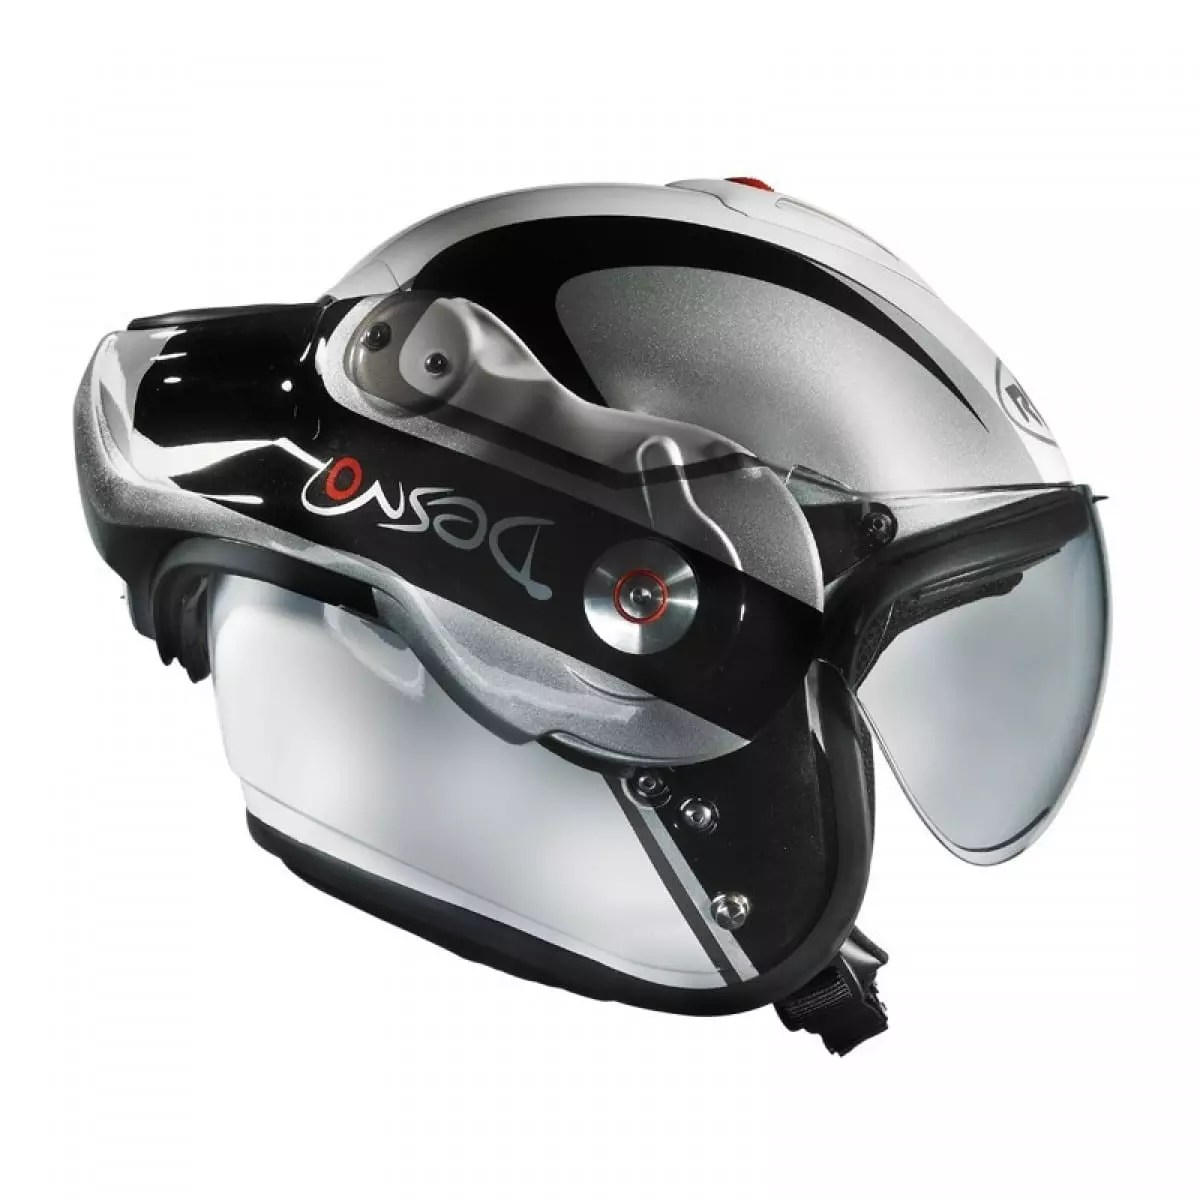 Roof Desmo Casque Roof Desmo V2 Elico Blanc/gris - Casque Modulable